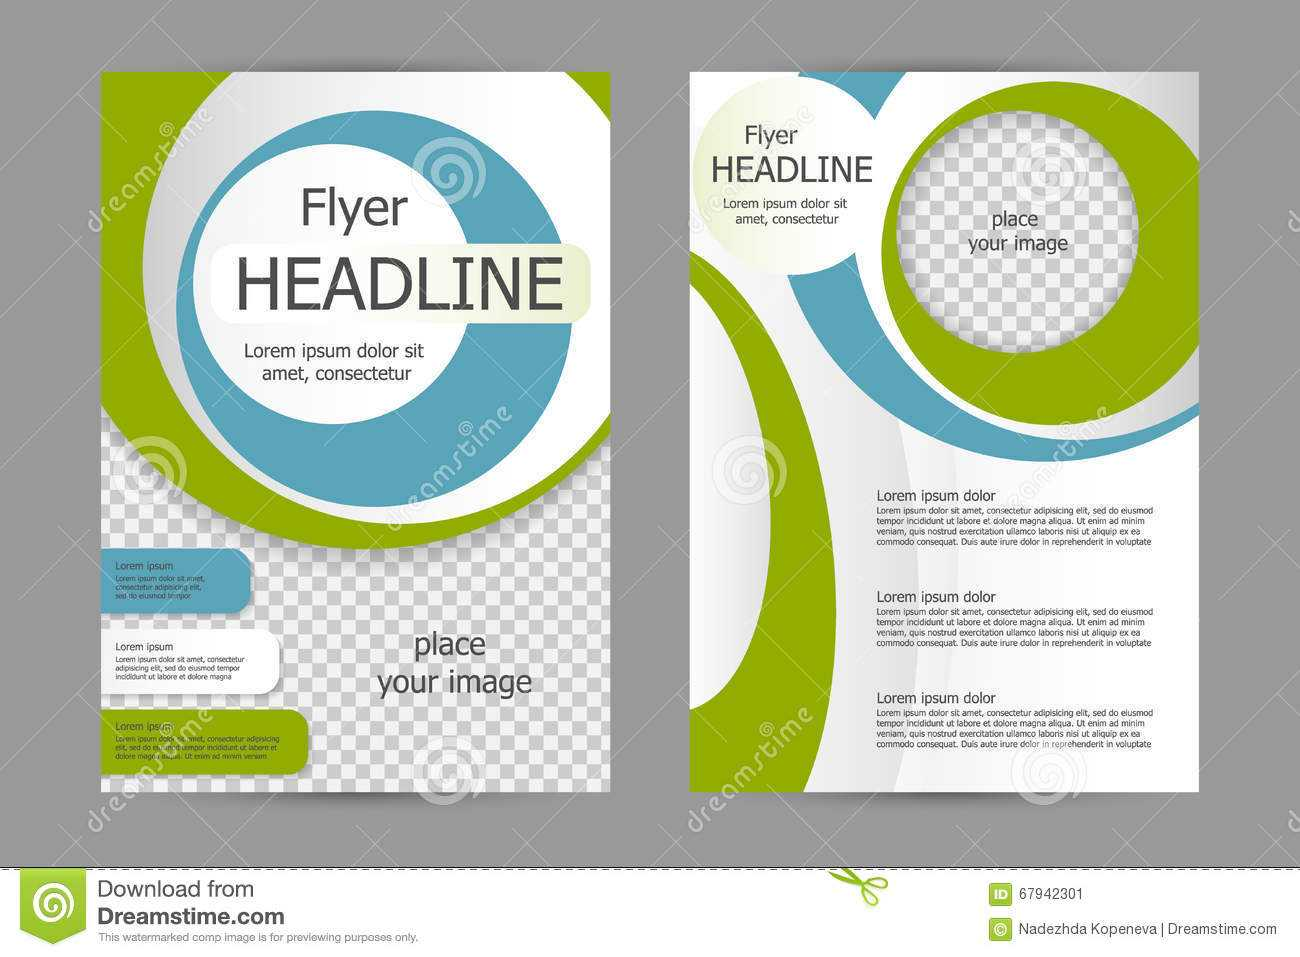 009 Vector Flyer Template Design Business Brochure Leaflet Intended For Training Brochure Template